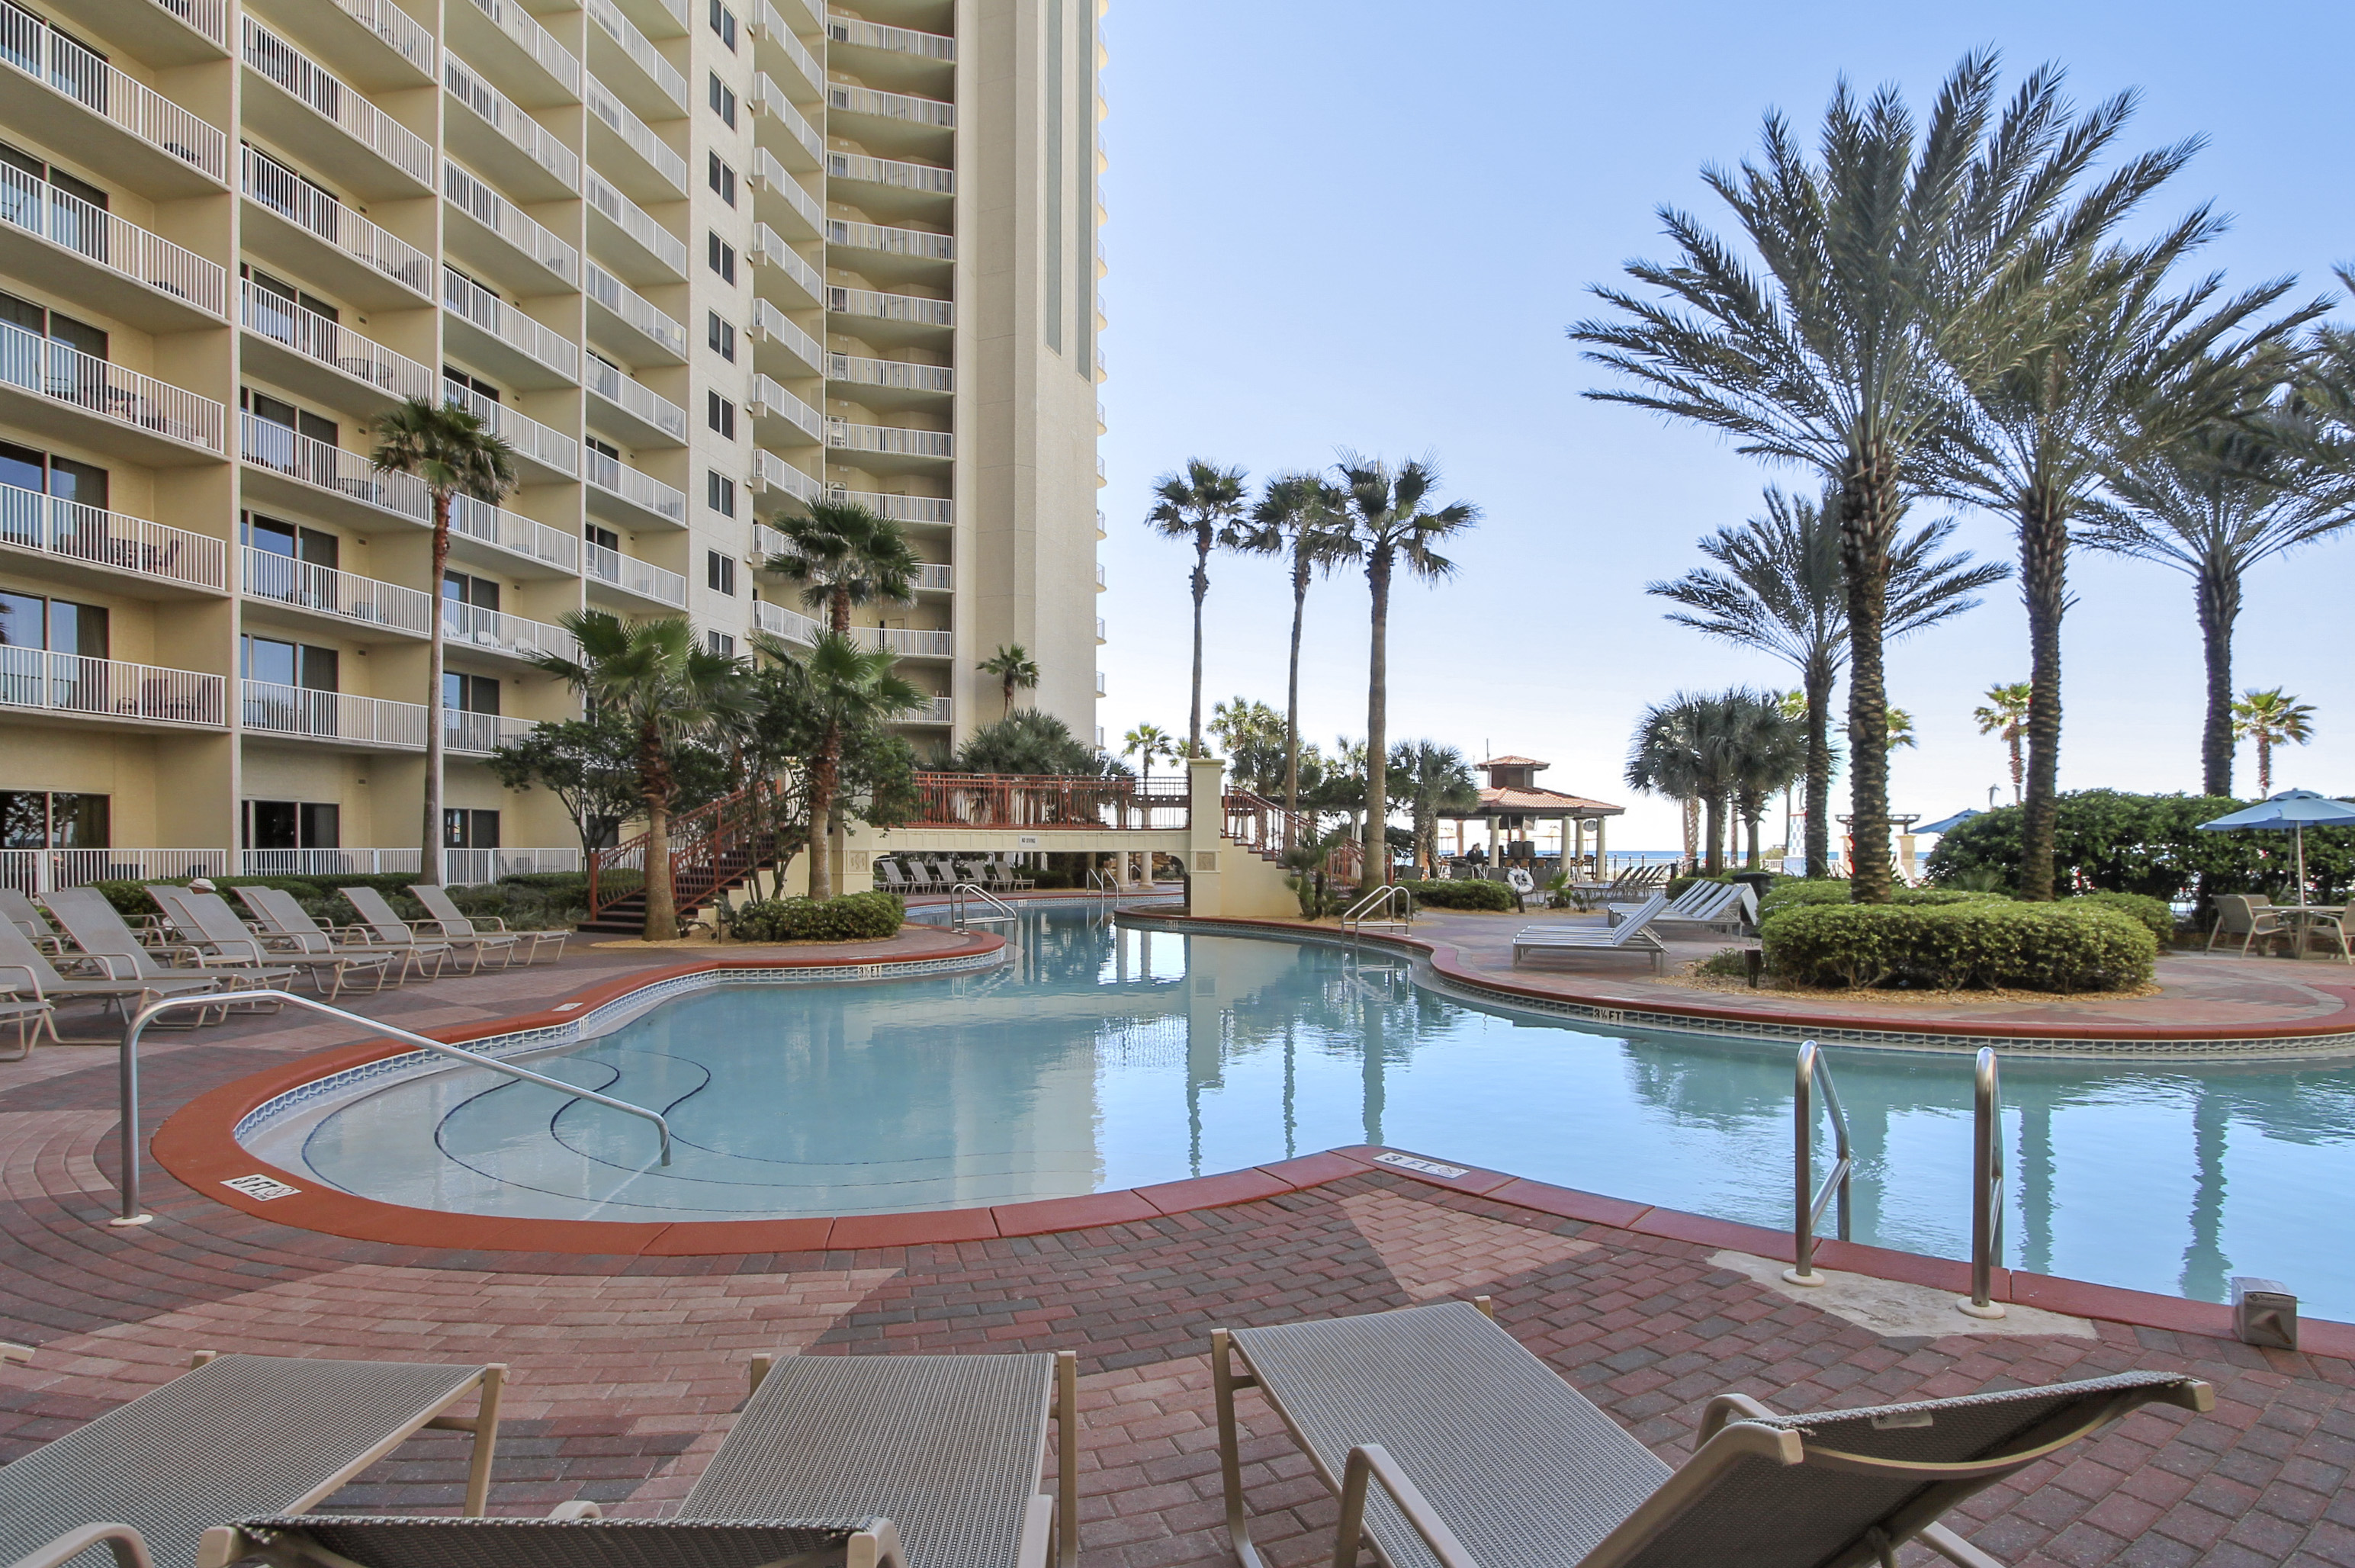 Plenty of room for everyone in this amazing pool at Shores of Panama Panama City Beach FL